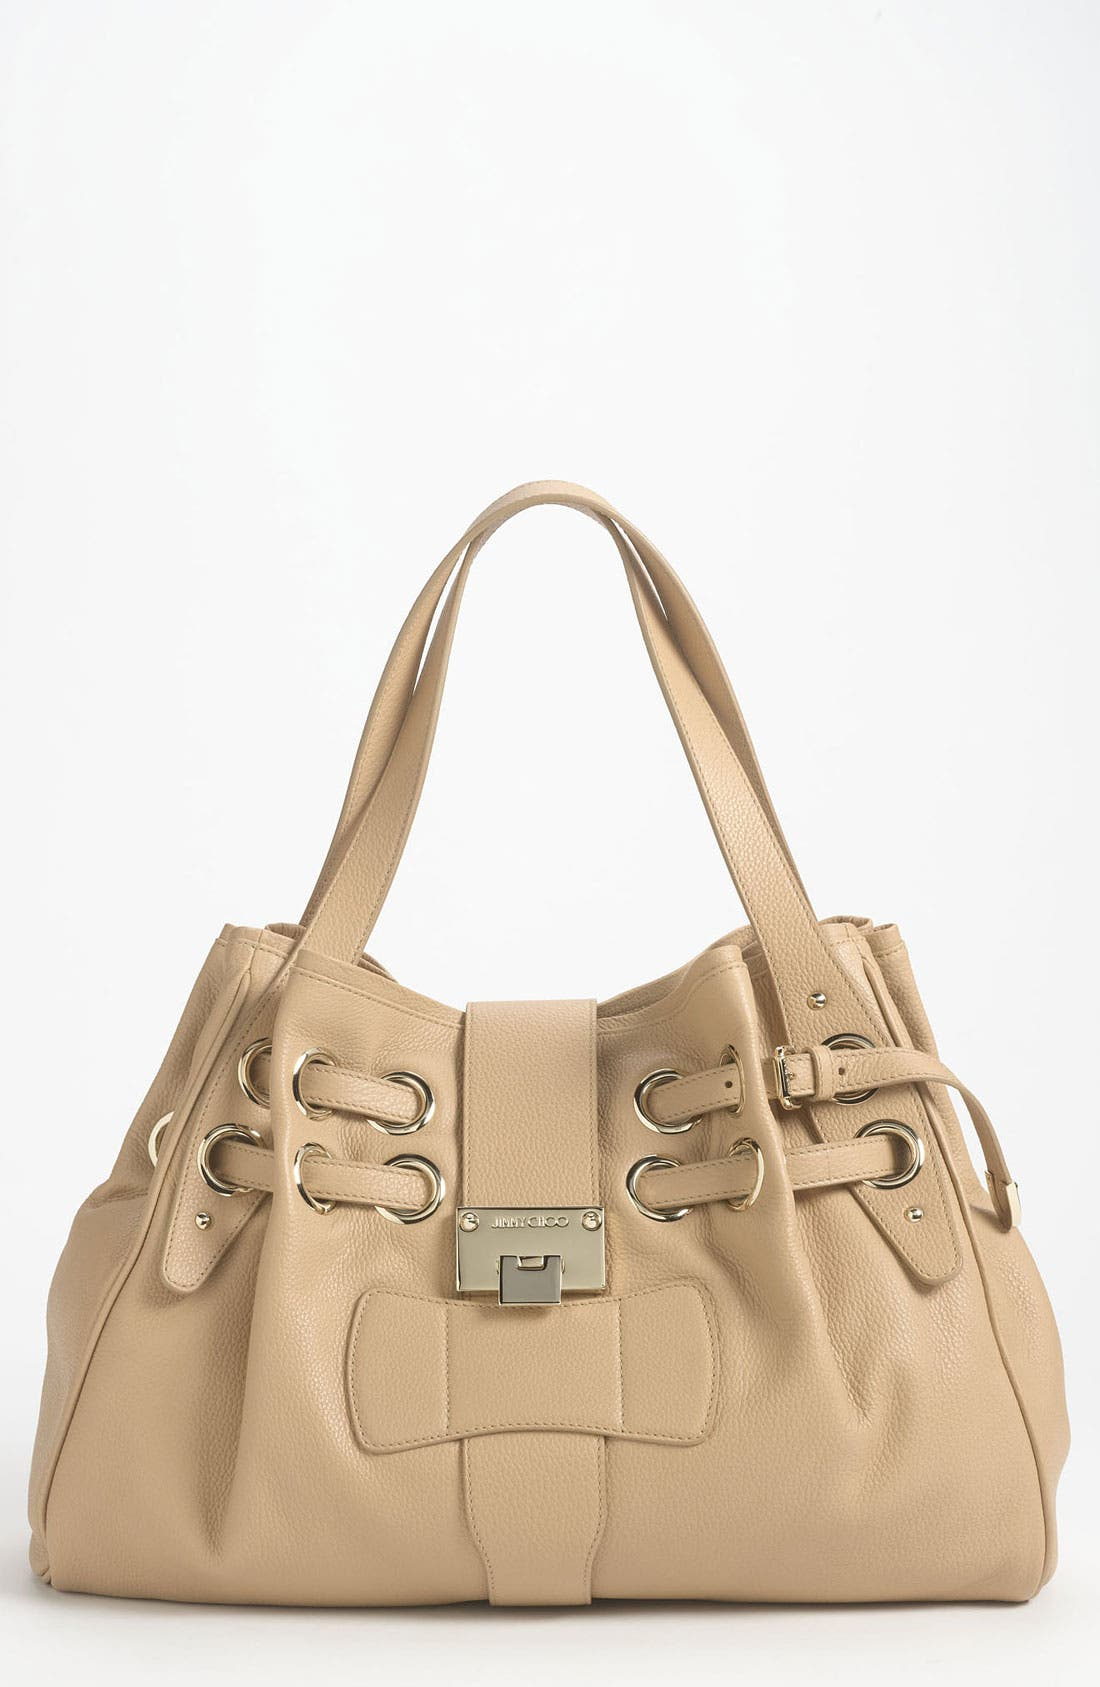 Main Image - Jimmy Choo 'Ramona' Leather Shopper